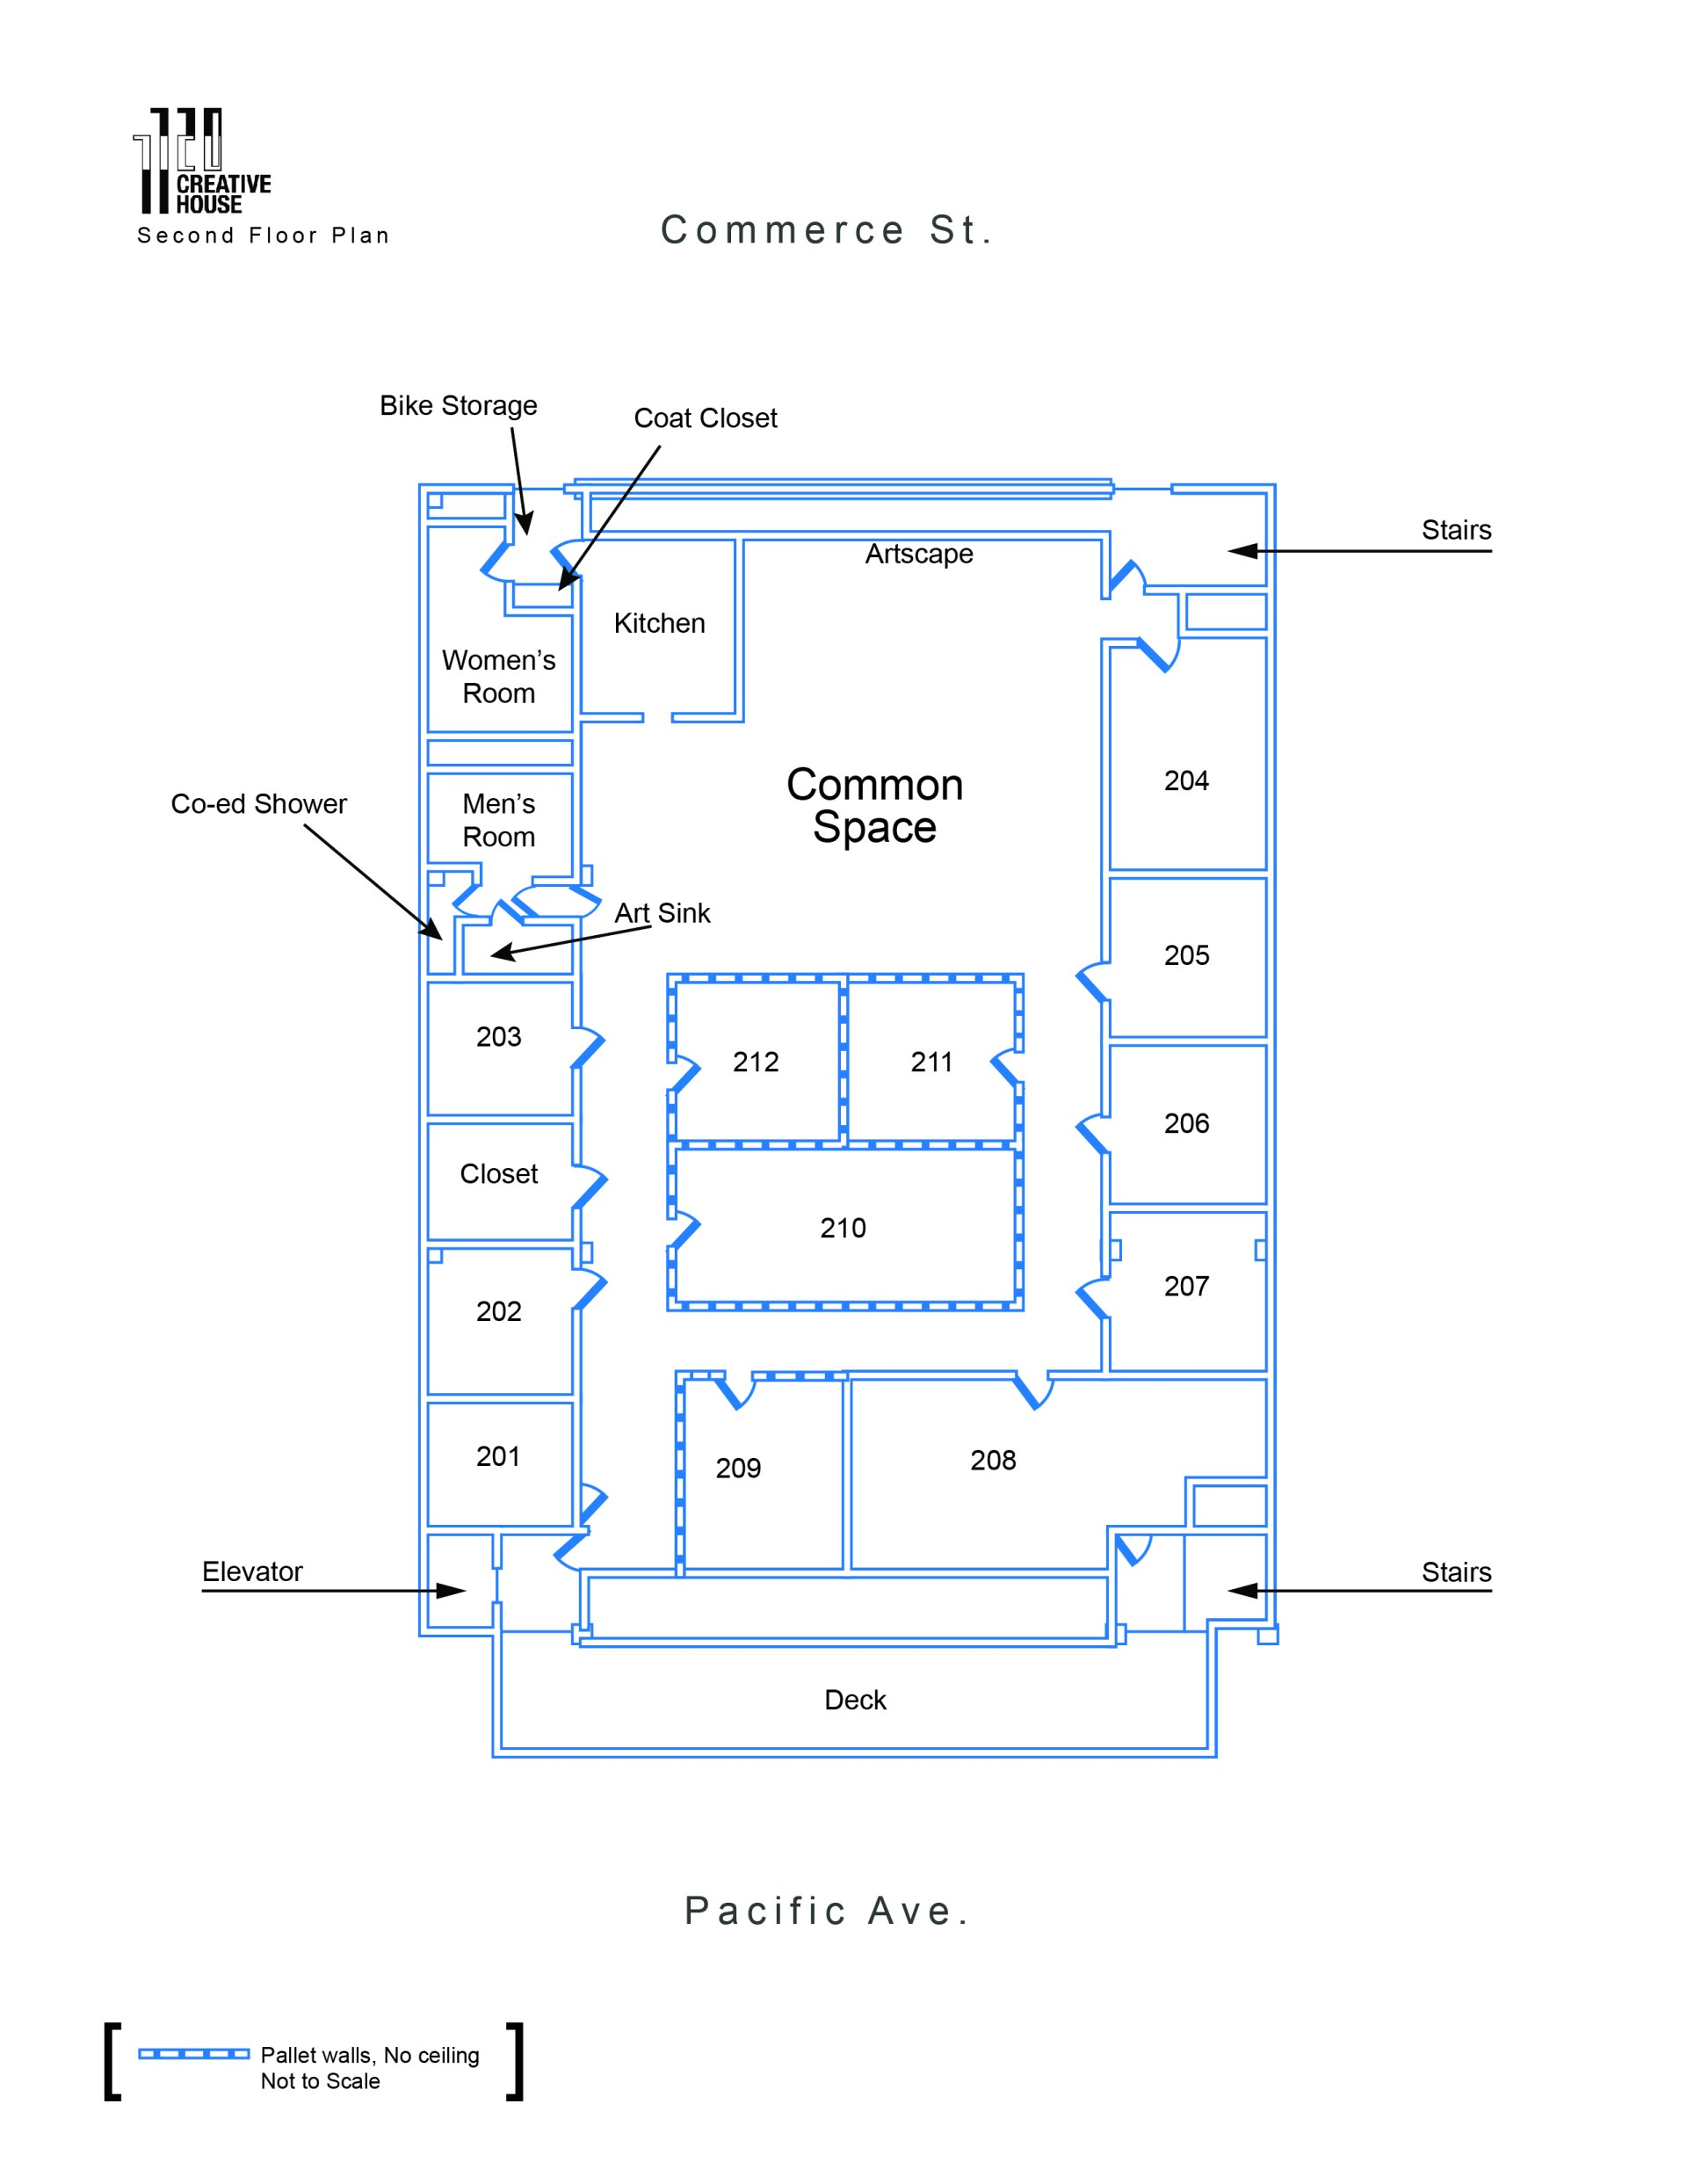 1120-creative-house-2nd-floor-map-01